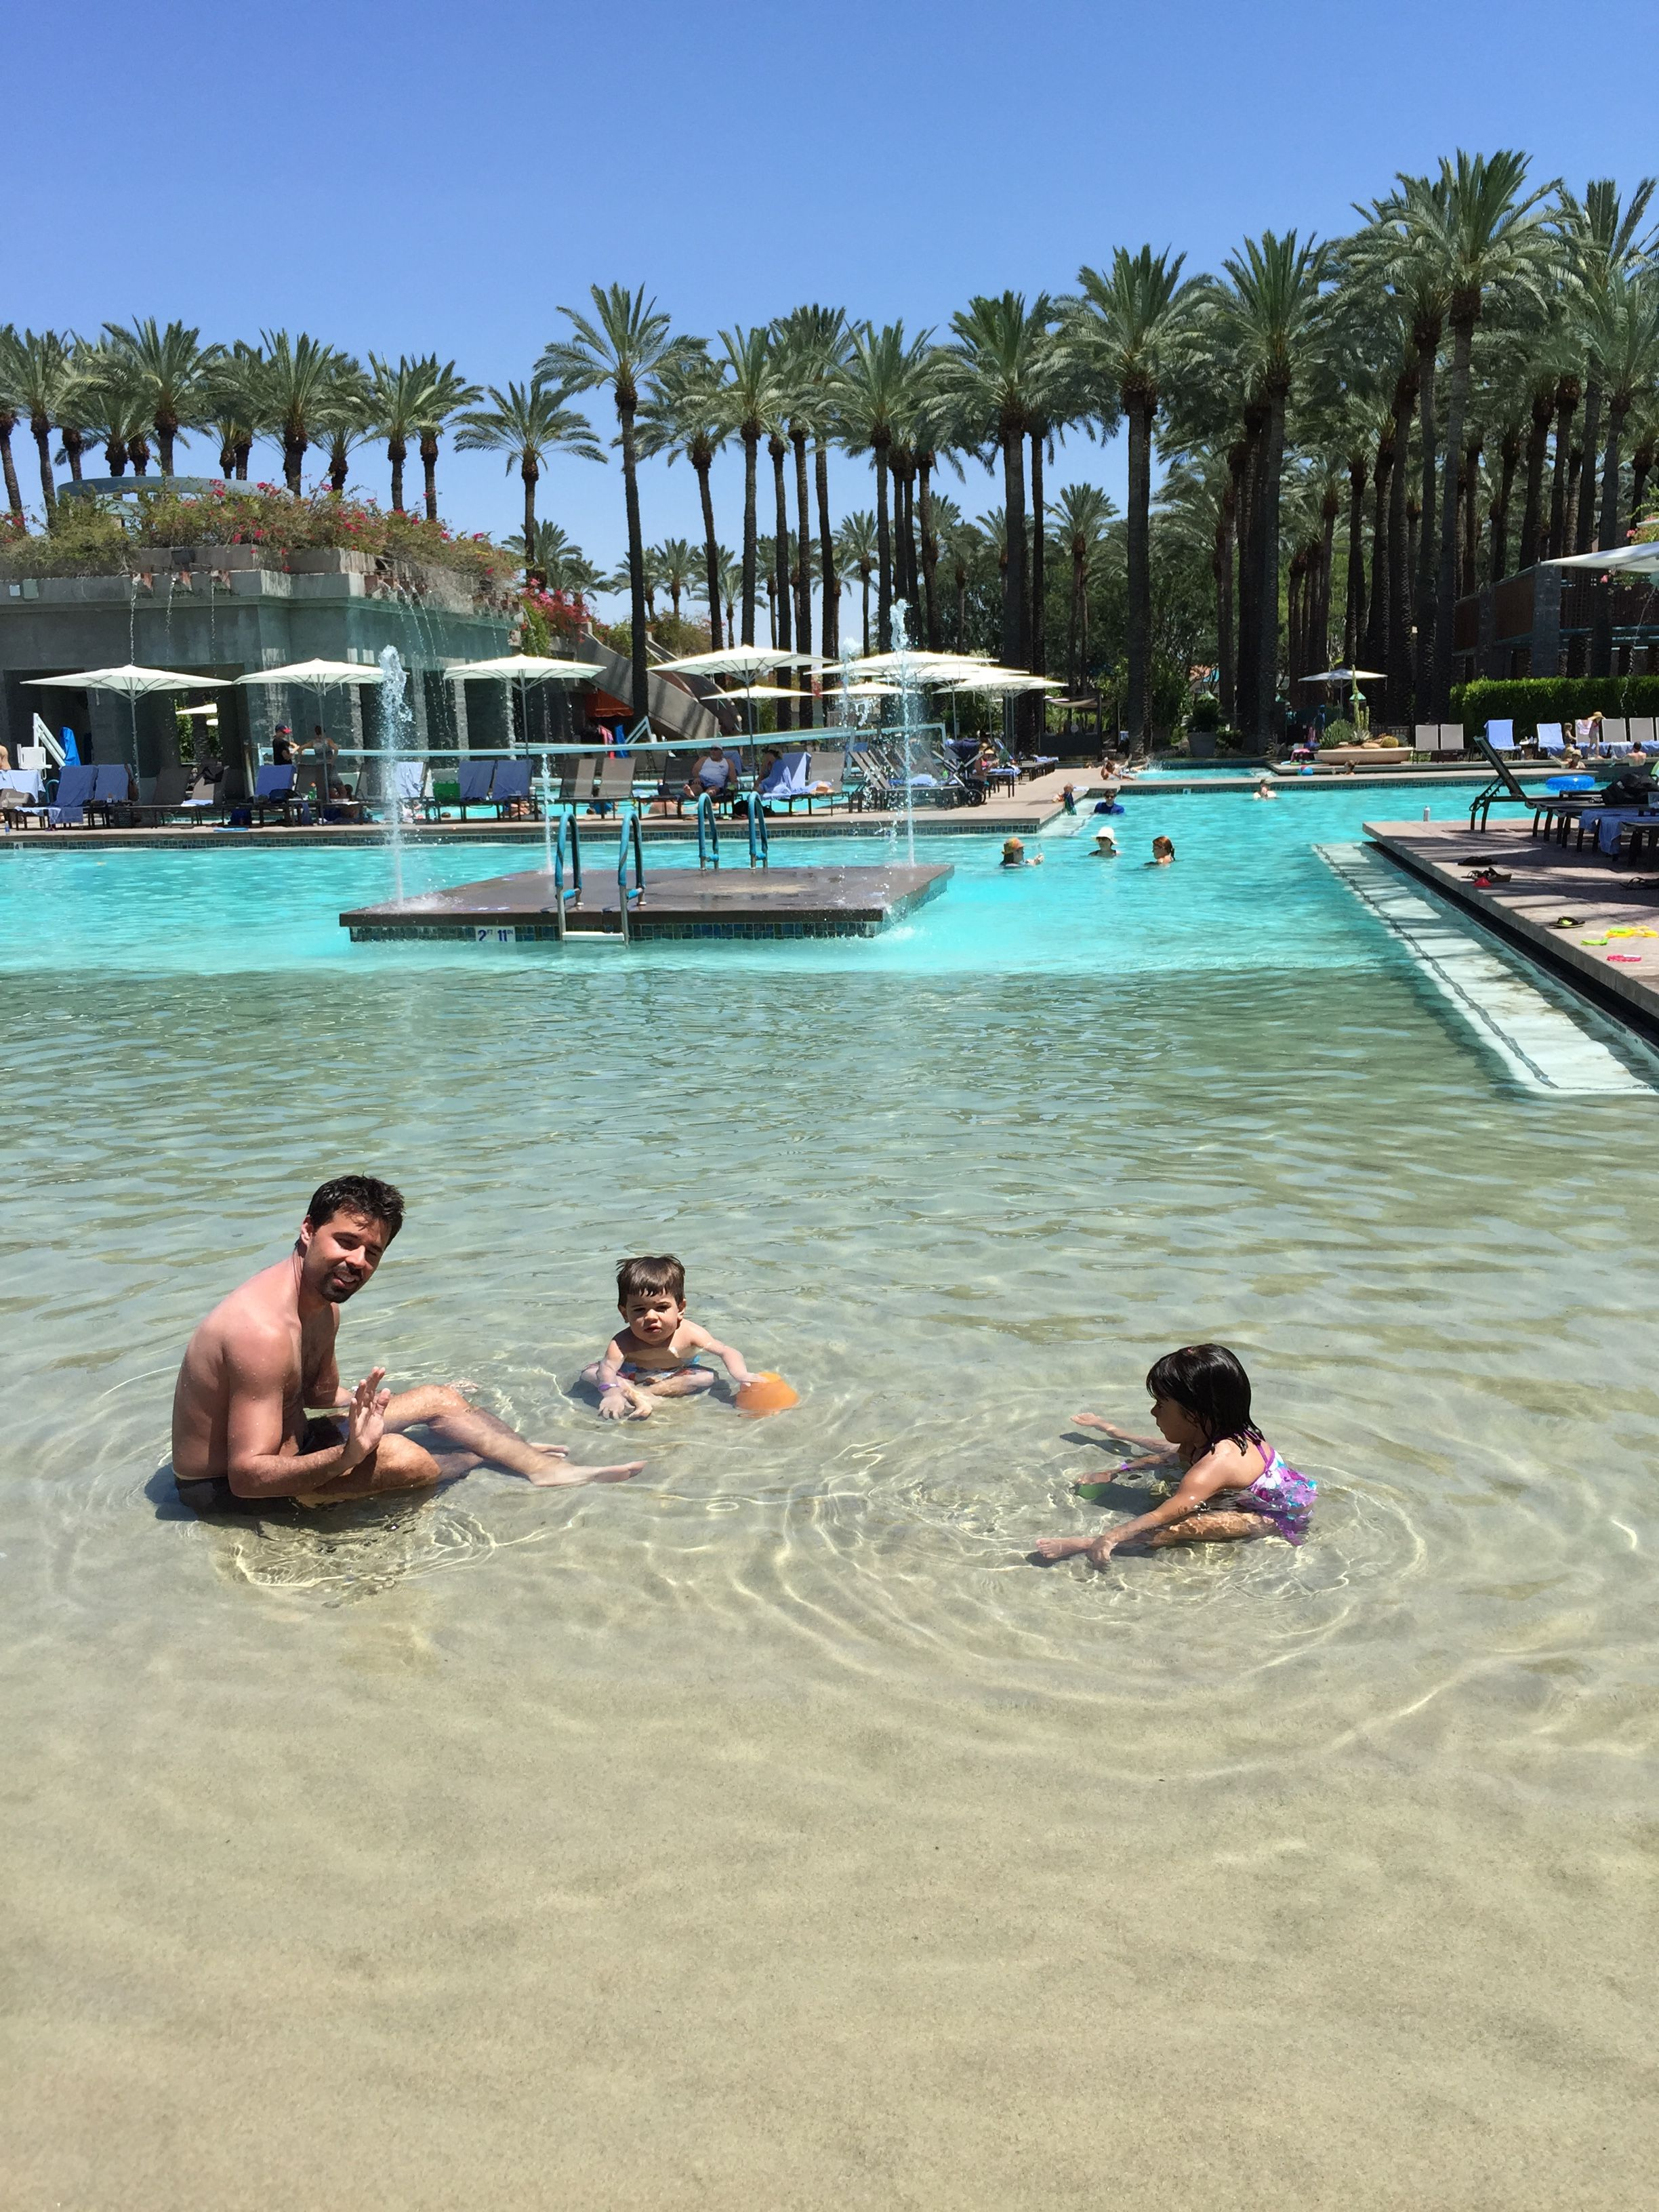 Erik and sons hanging at Hyatt Resort Scottsdale Az amazing place!